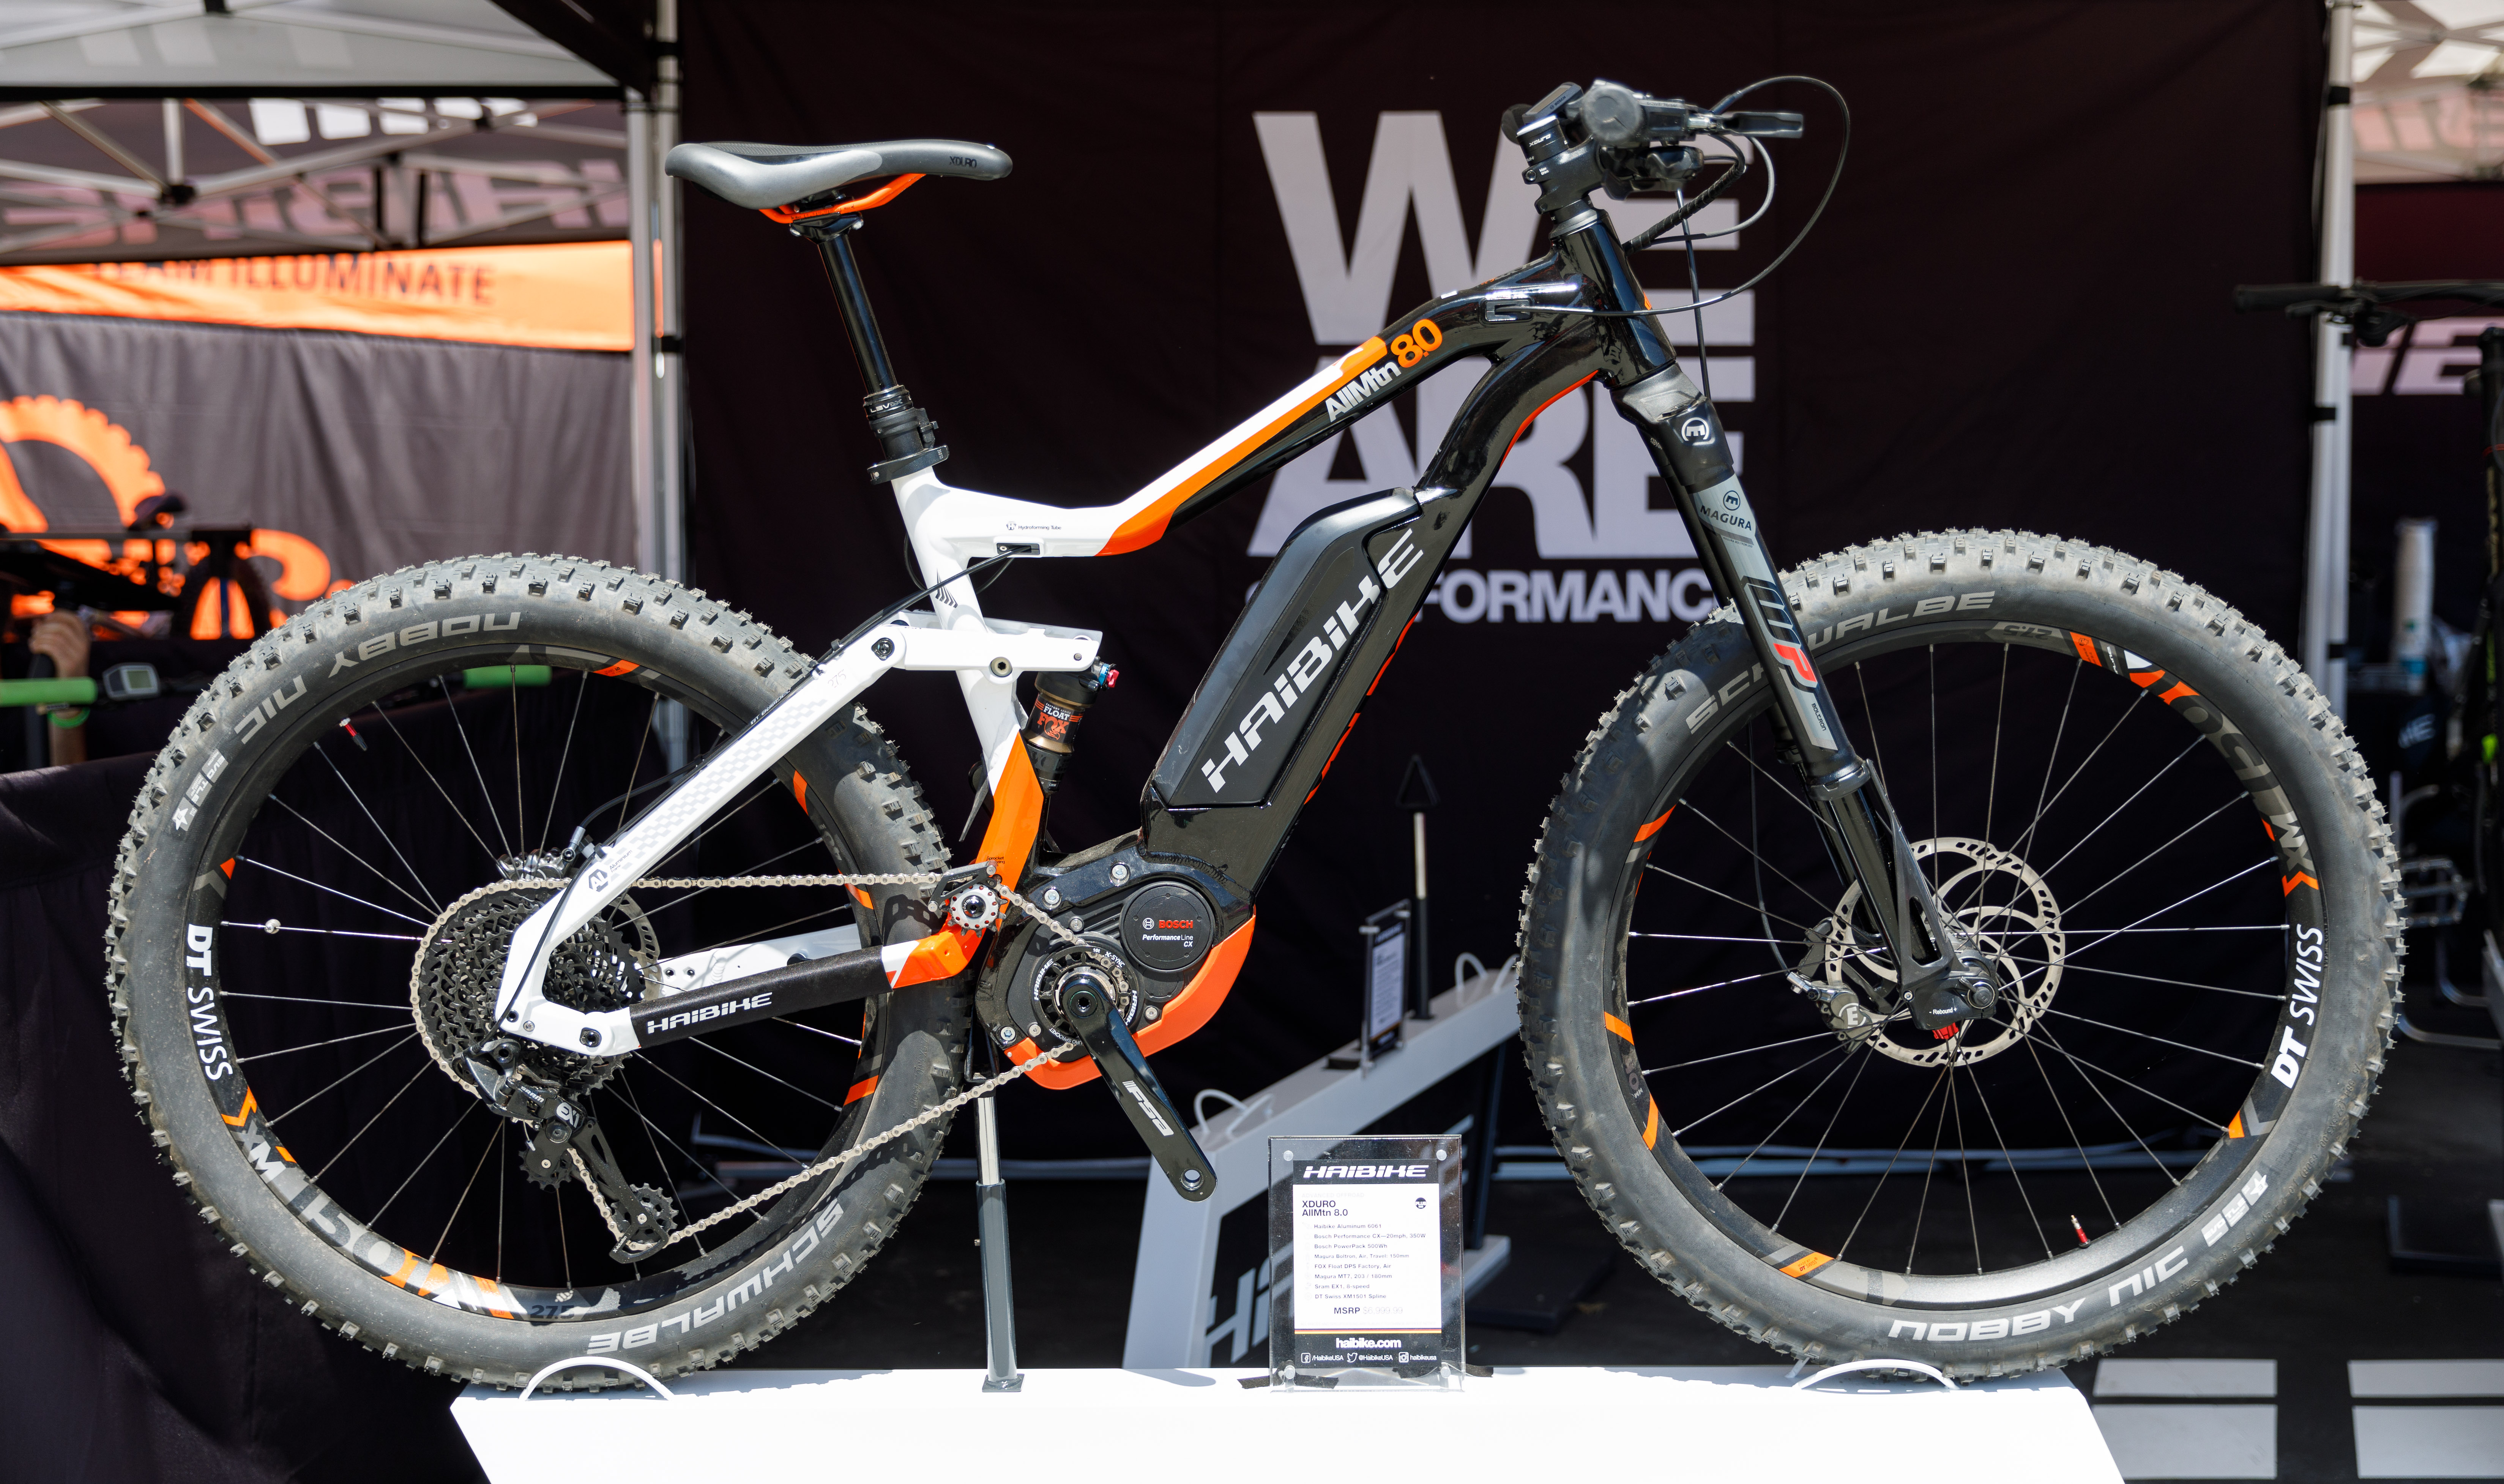 German bike maker Haibike was an early entrant into the e-mountain bike market. This full-suspension Xduro AllMtn 8.0 costs $8,000 and has a 500Wh battery and 350W motor from Bosch.